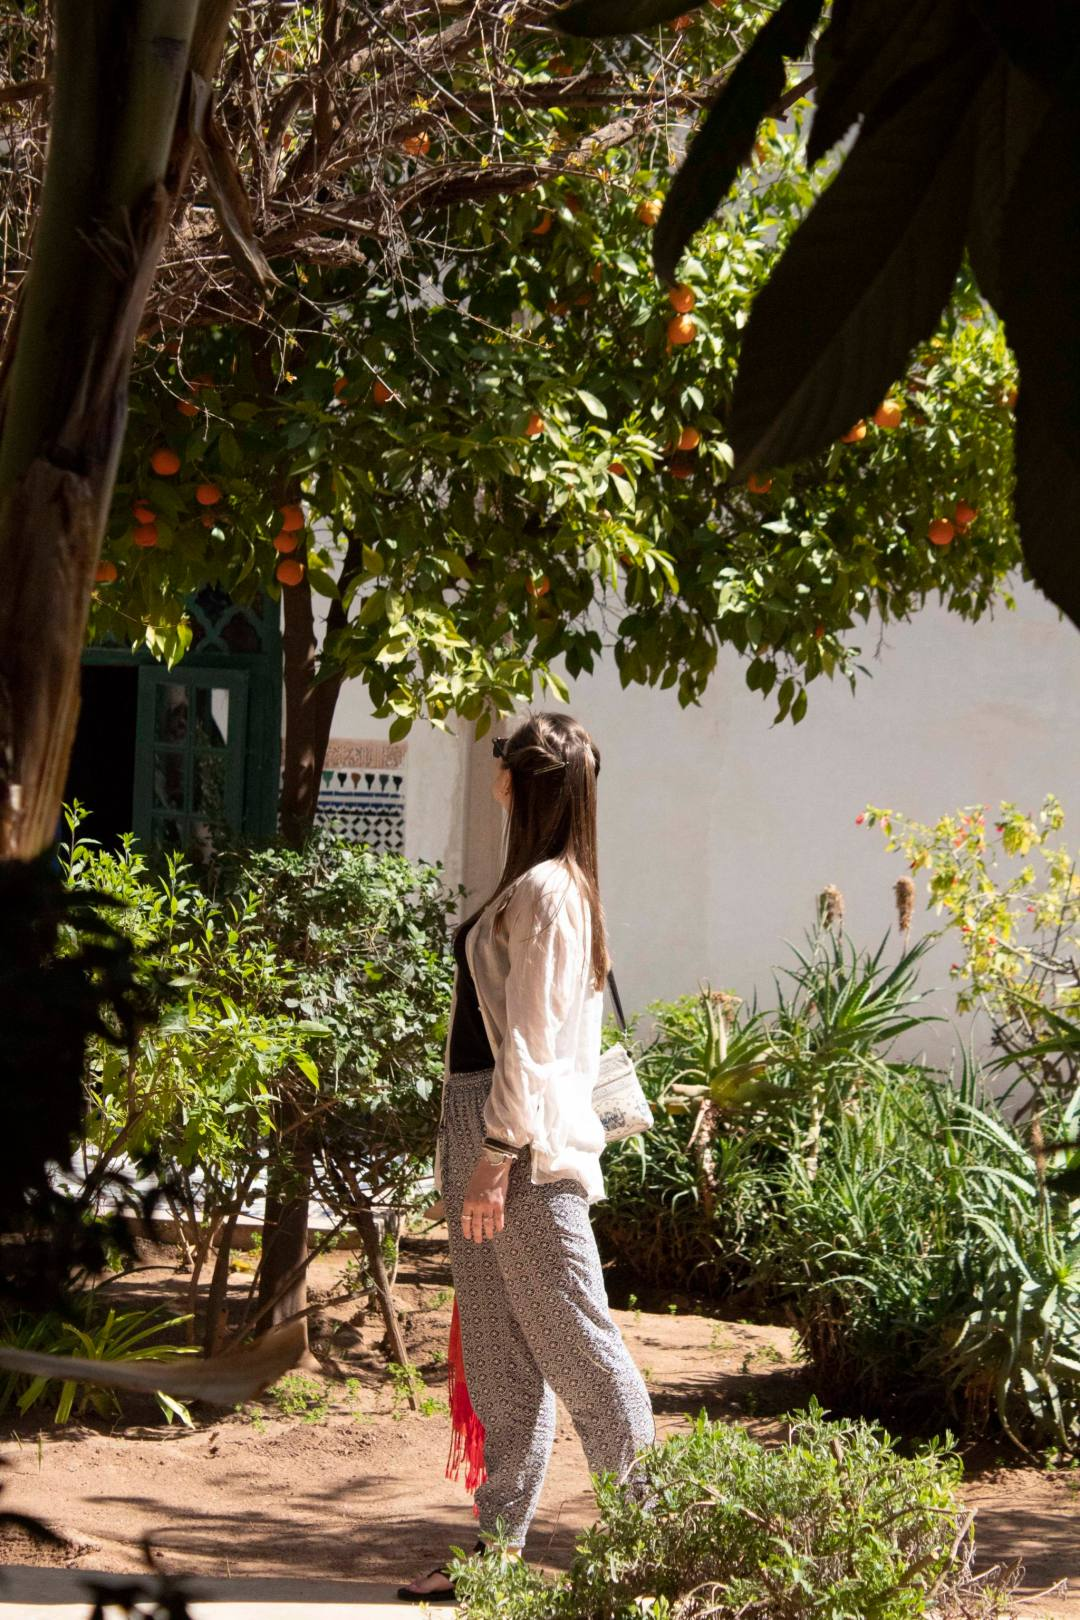 Woman in Marrakech garden with orange trees